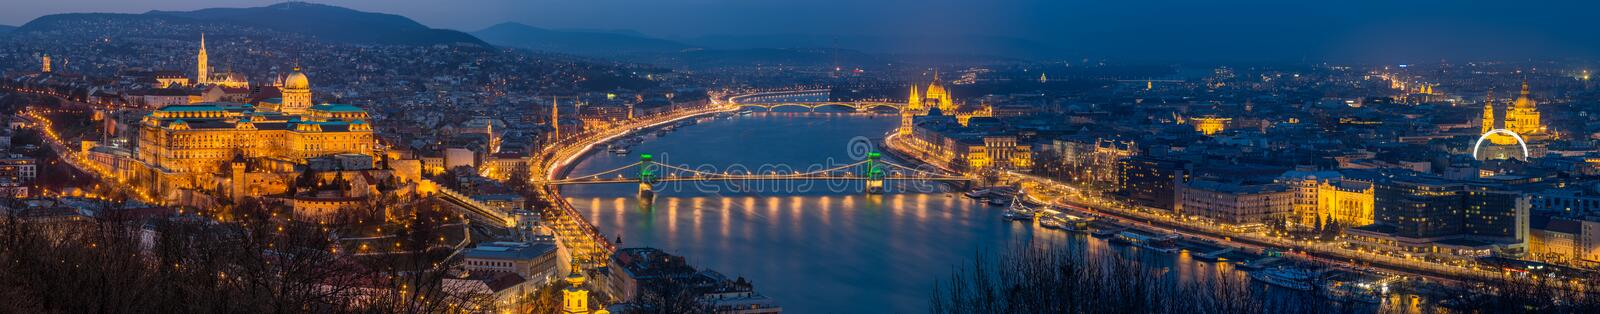 Budapest, Hungary - Panoramic skyline view of Budapest with Historic Royal Palace stock photo